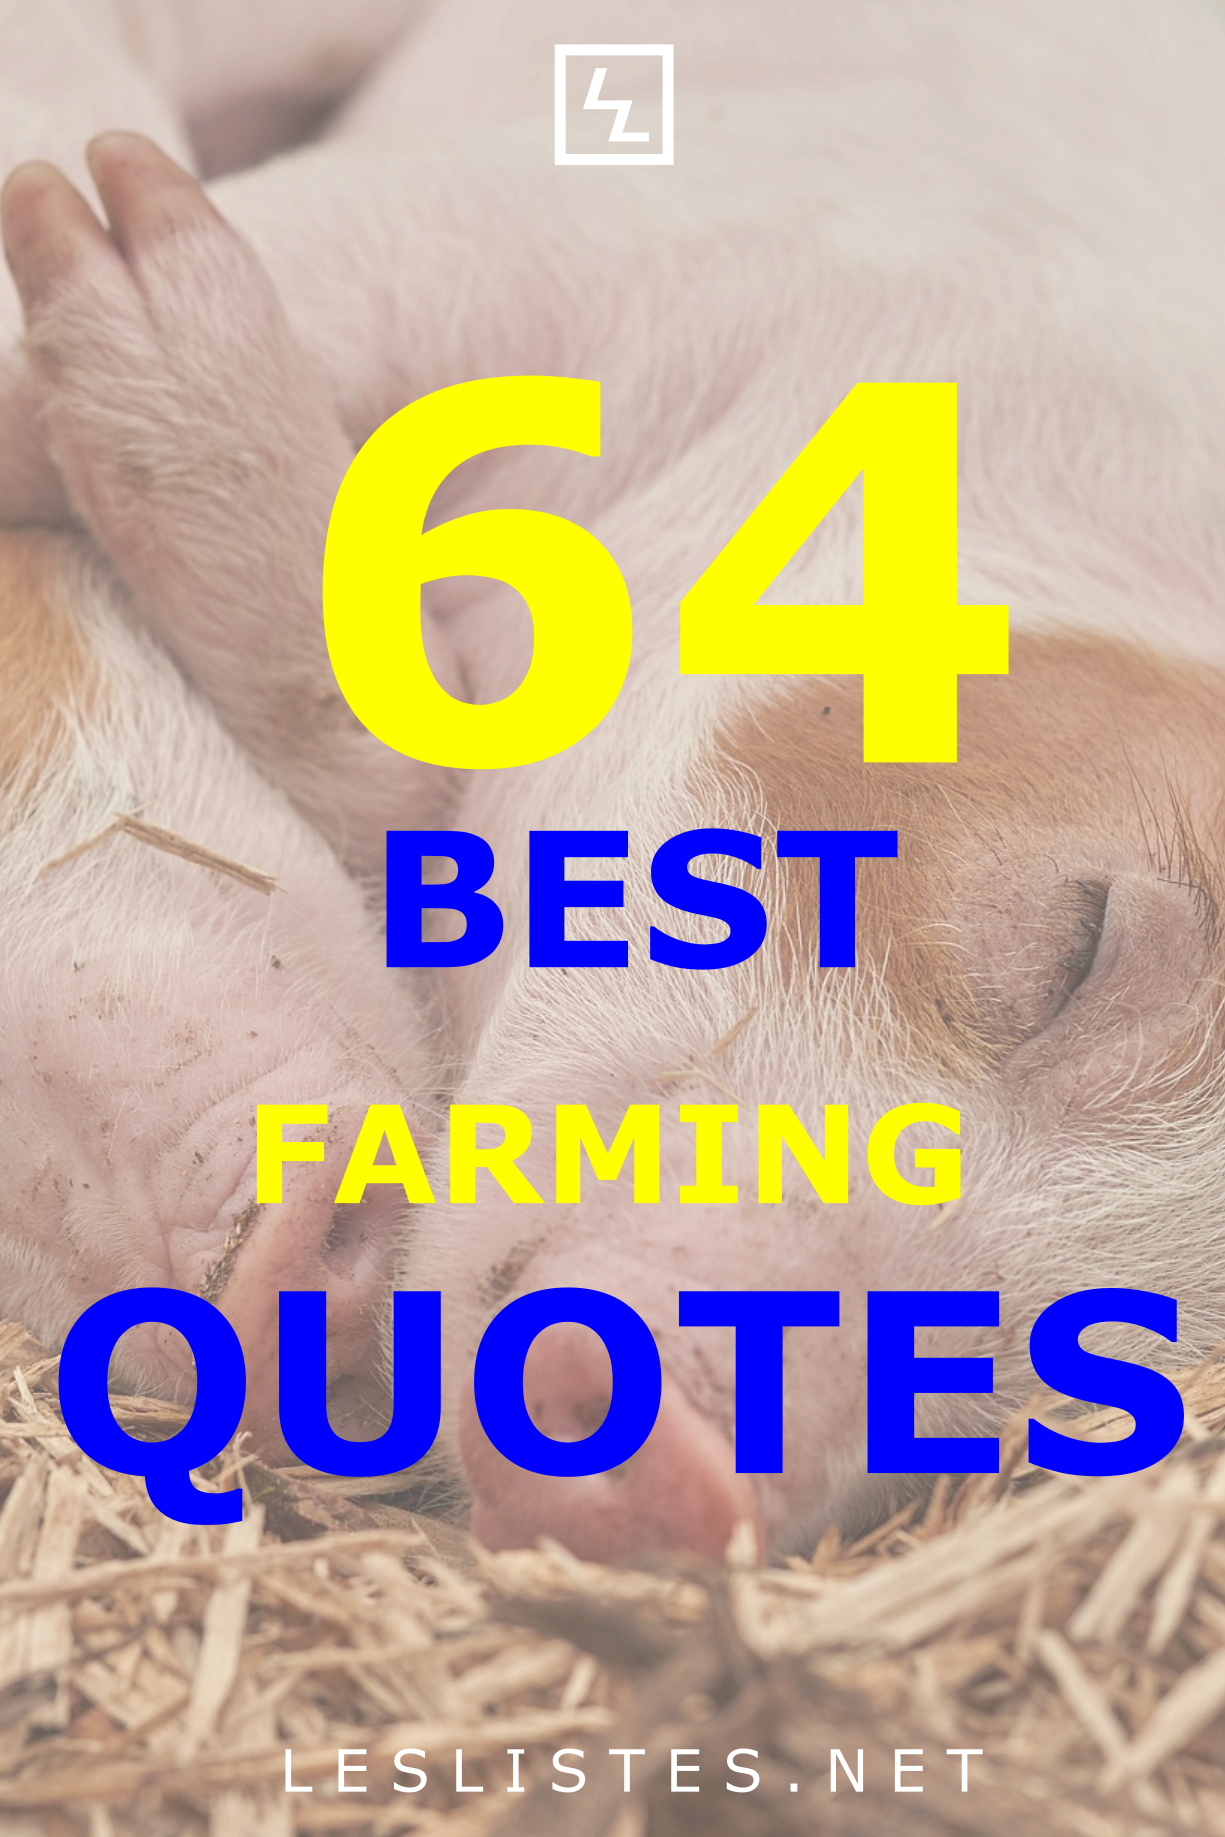 Farming is one of the most important jobs in the world